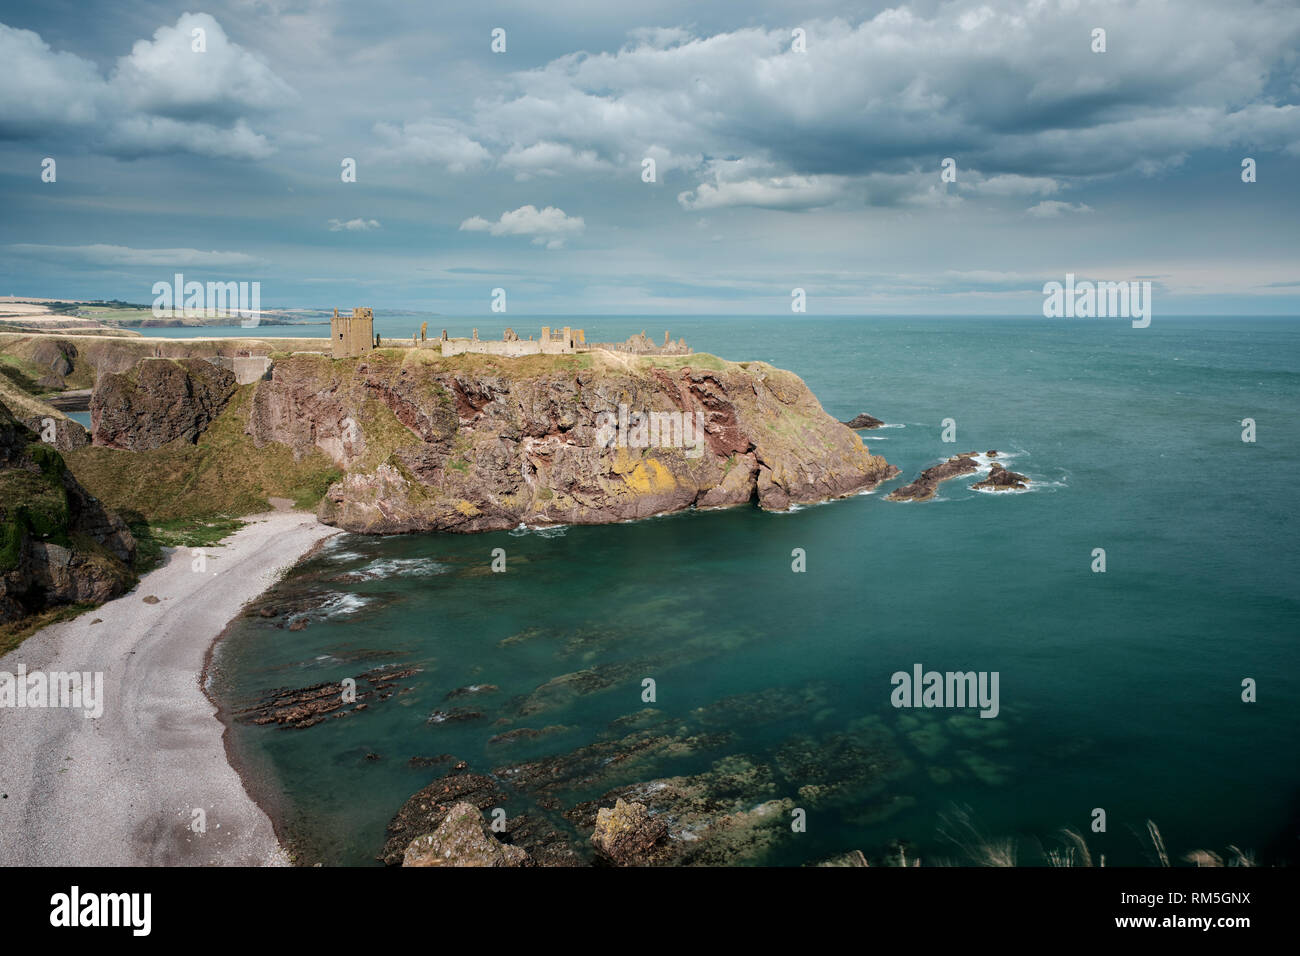 Dunnottar castle ruin and the surrounding coastline, bathed in sunshine with clouds overhead, Stonehaven, Aberdeenshire, Scotland - Stock Image